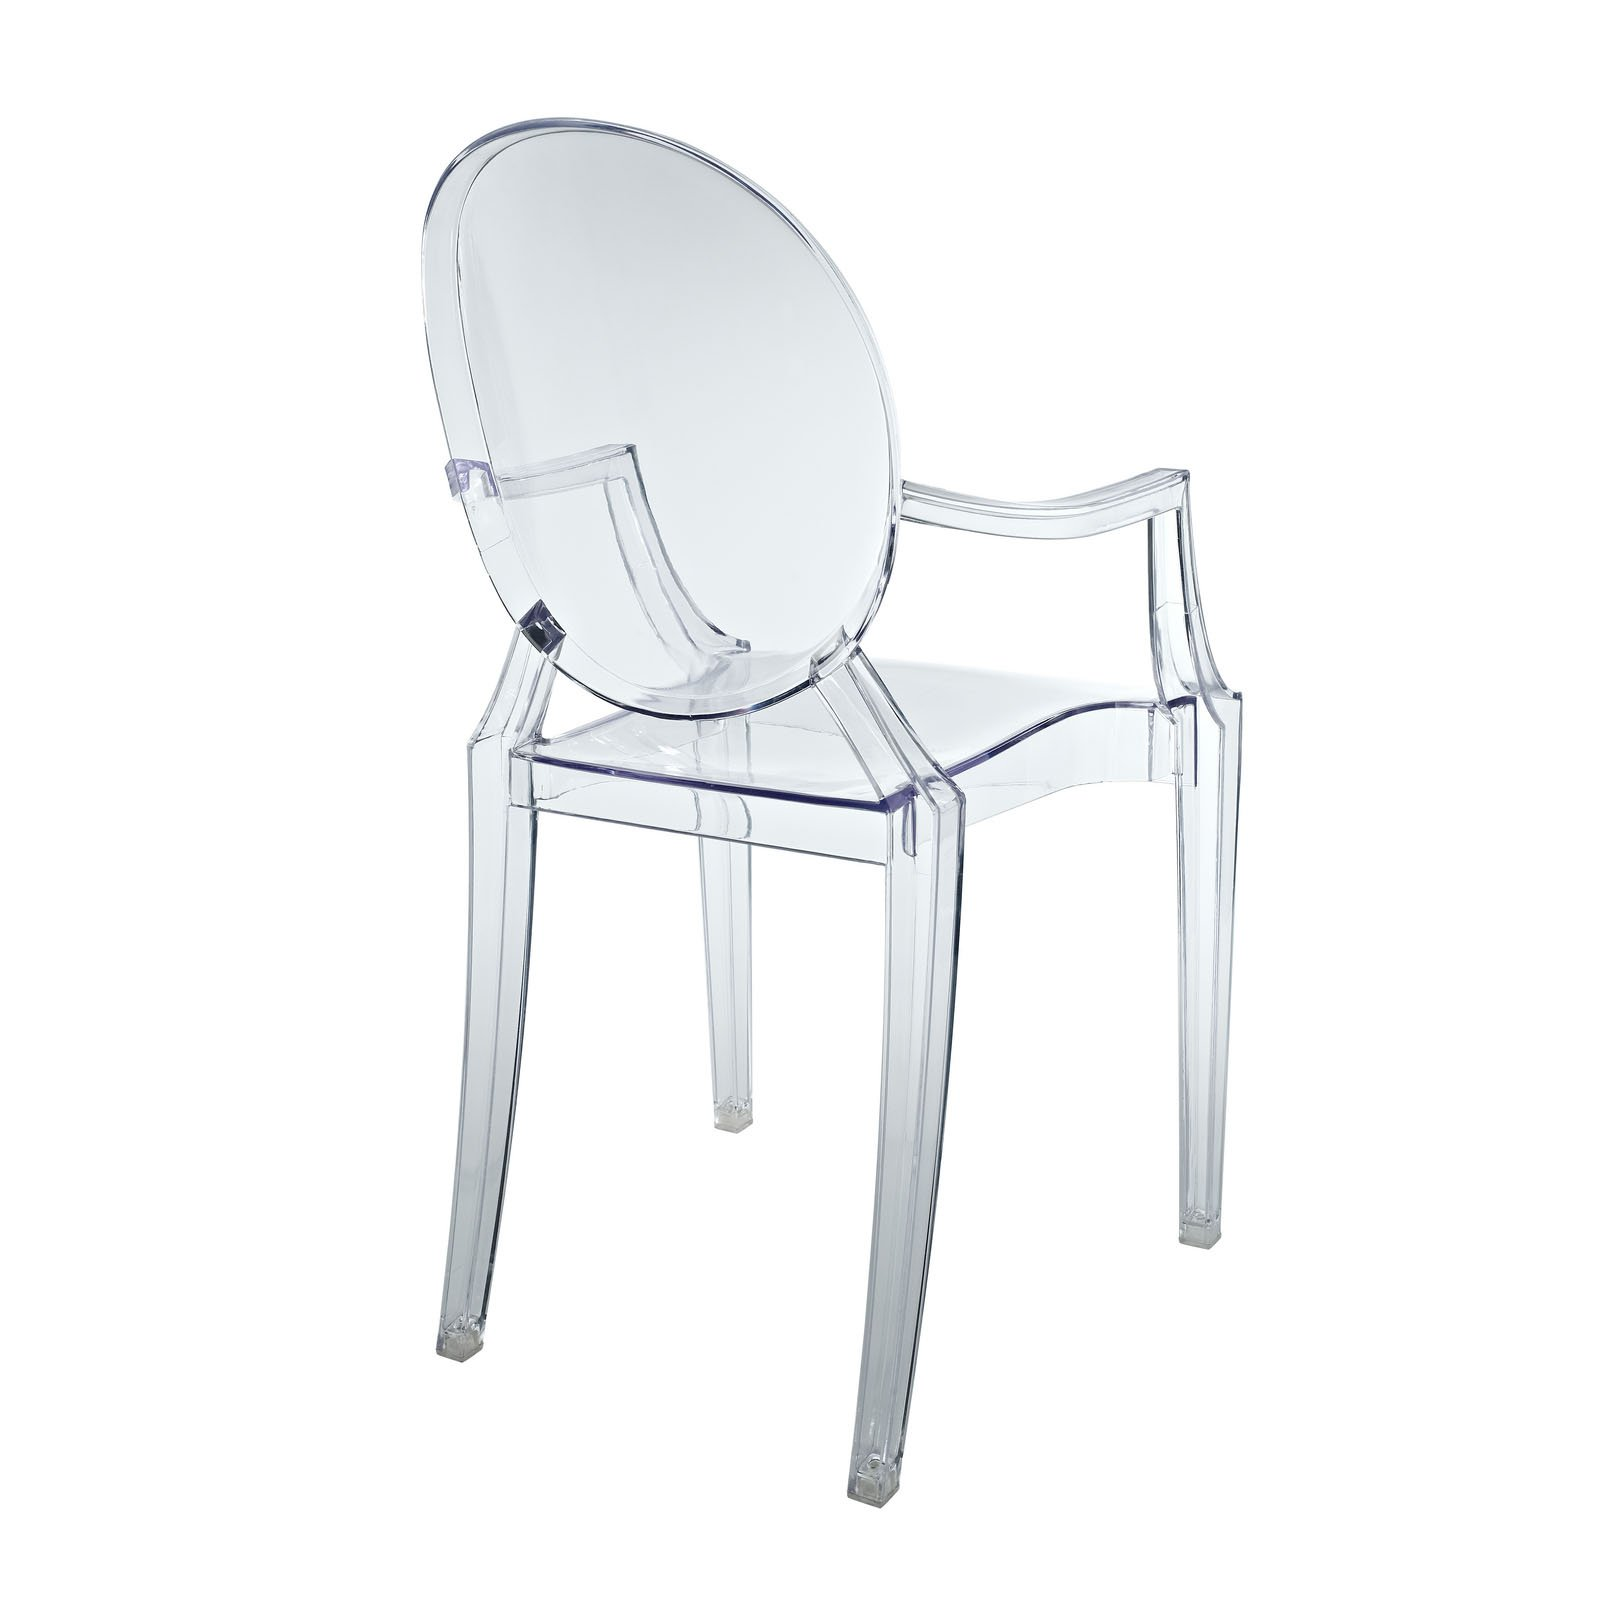 LexMod Philippe Starck Style Louis Ghost Chair FOR KIDS